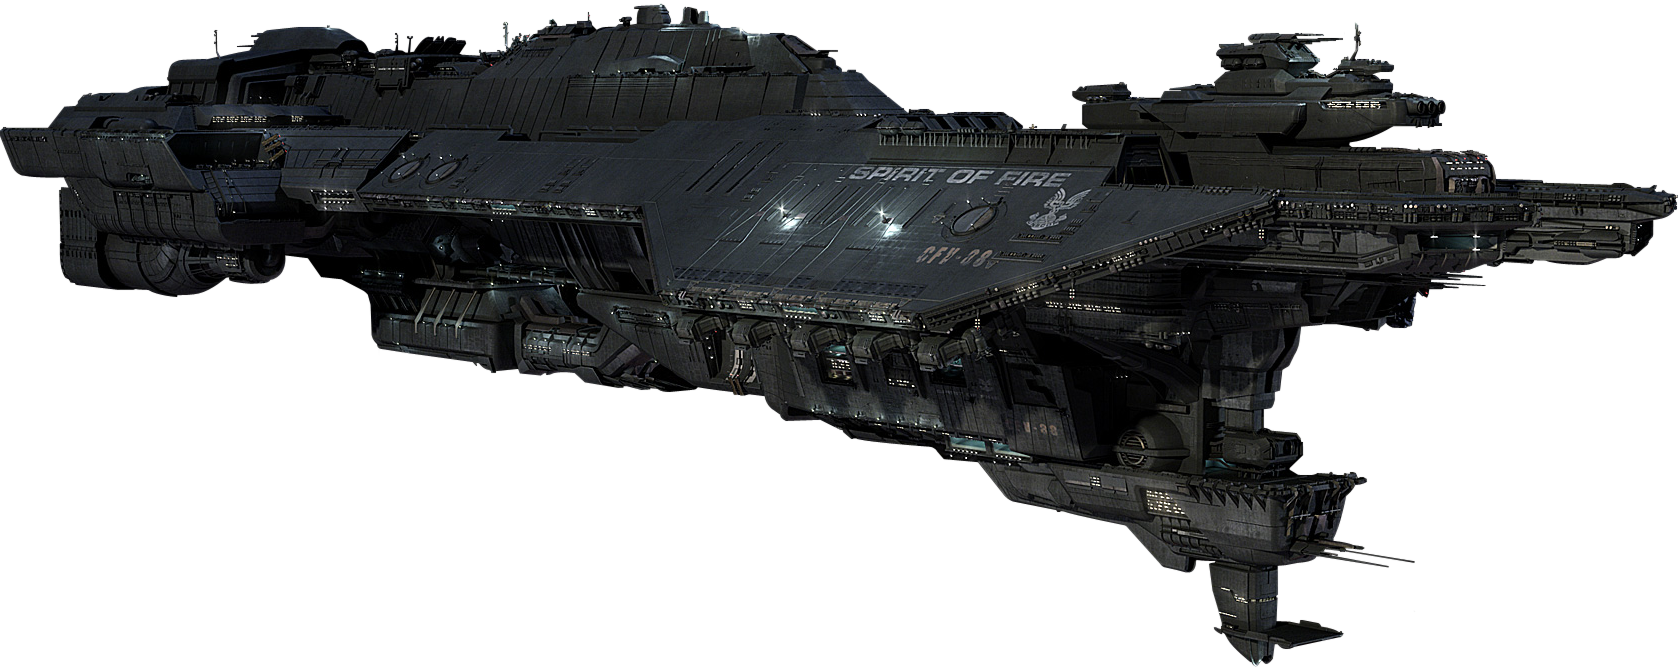 Halo UNSC Spirit of fire png « MyConfinedSpace